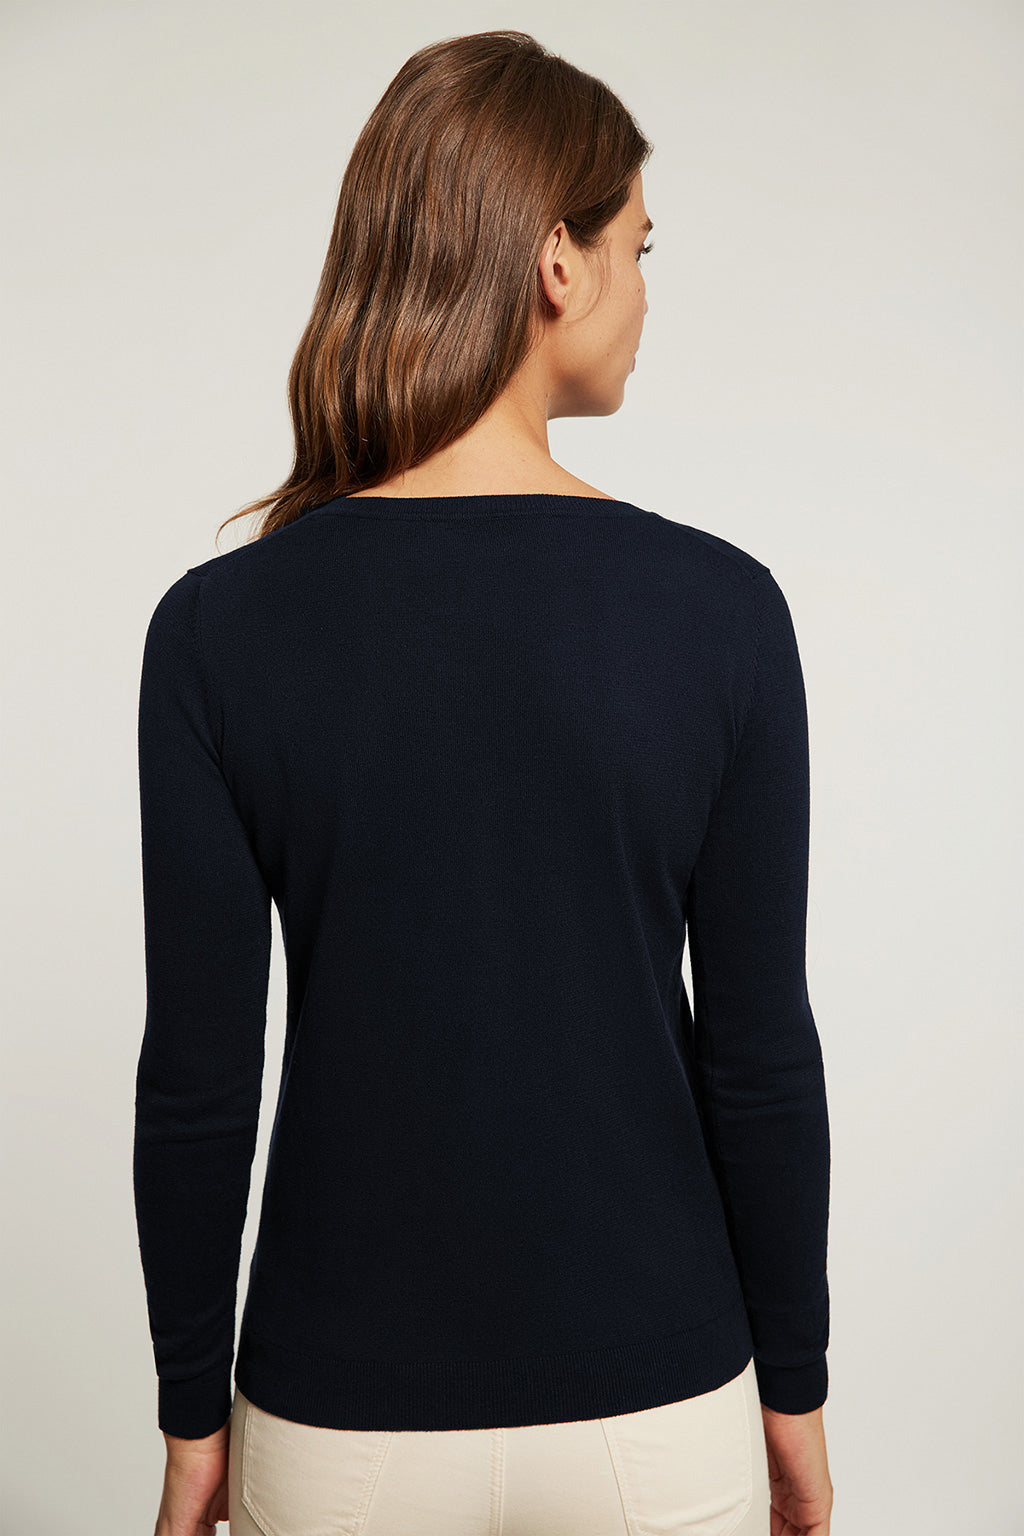 Navy blue V-neck light jumper